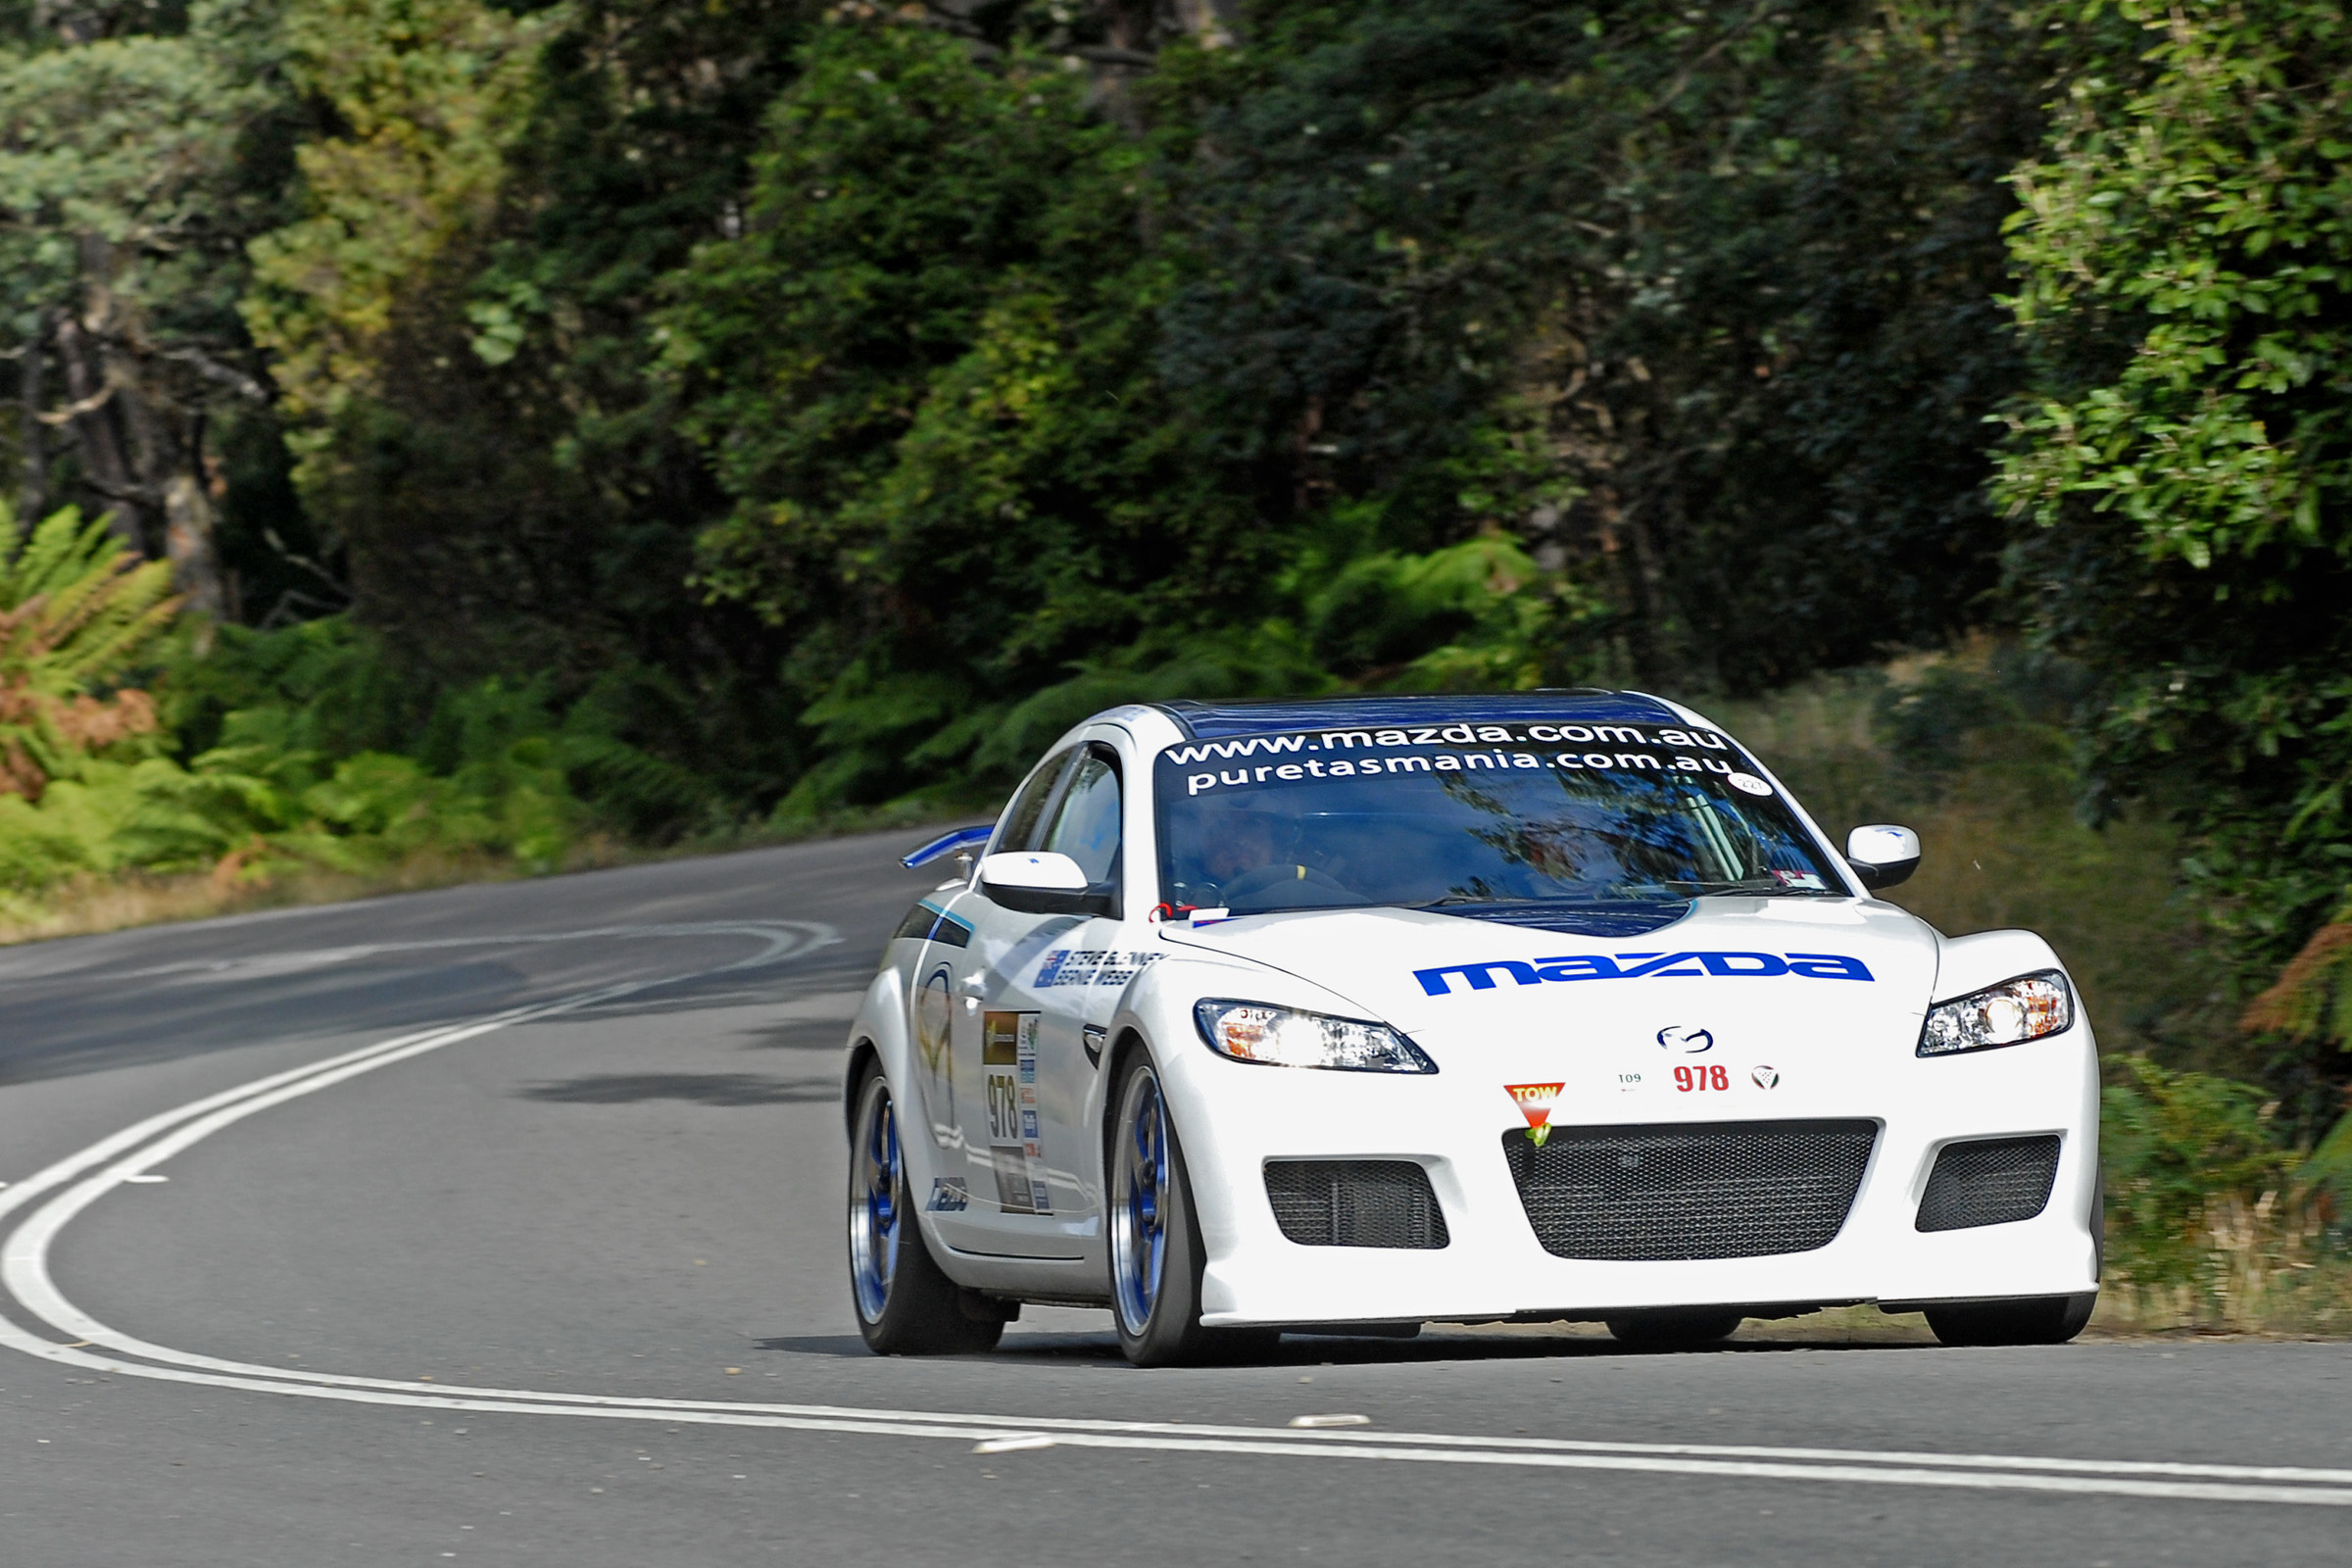 Mazda RX-8 SP set for Targa 2010